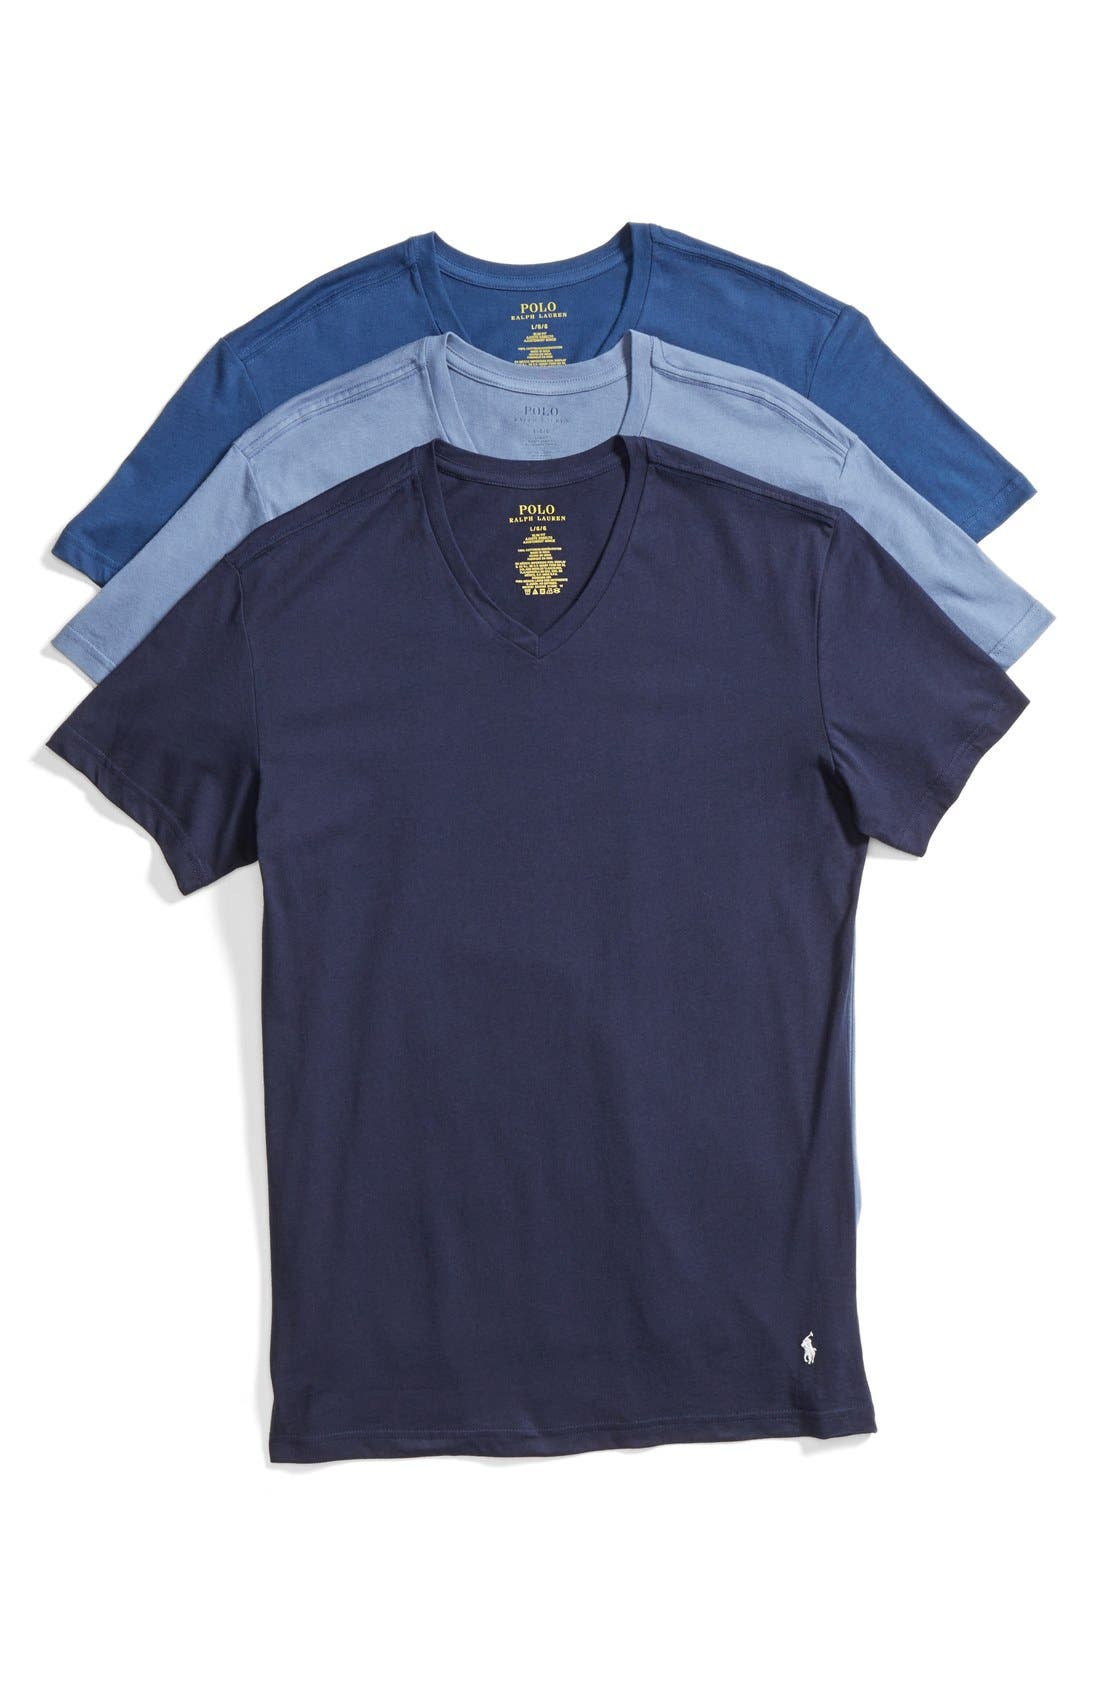 Main Image - Polo Ralph Lauren 3-Pack Trim Fit T-Shirt